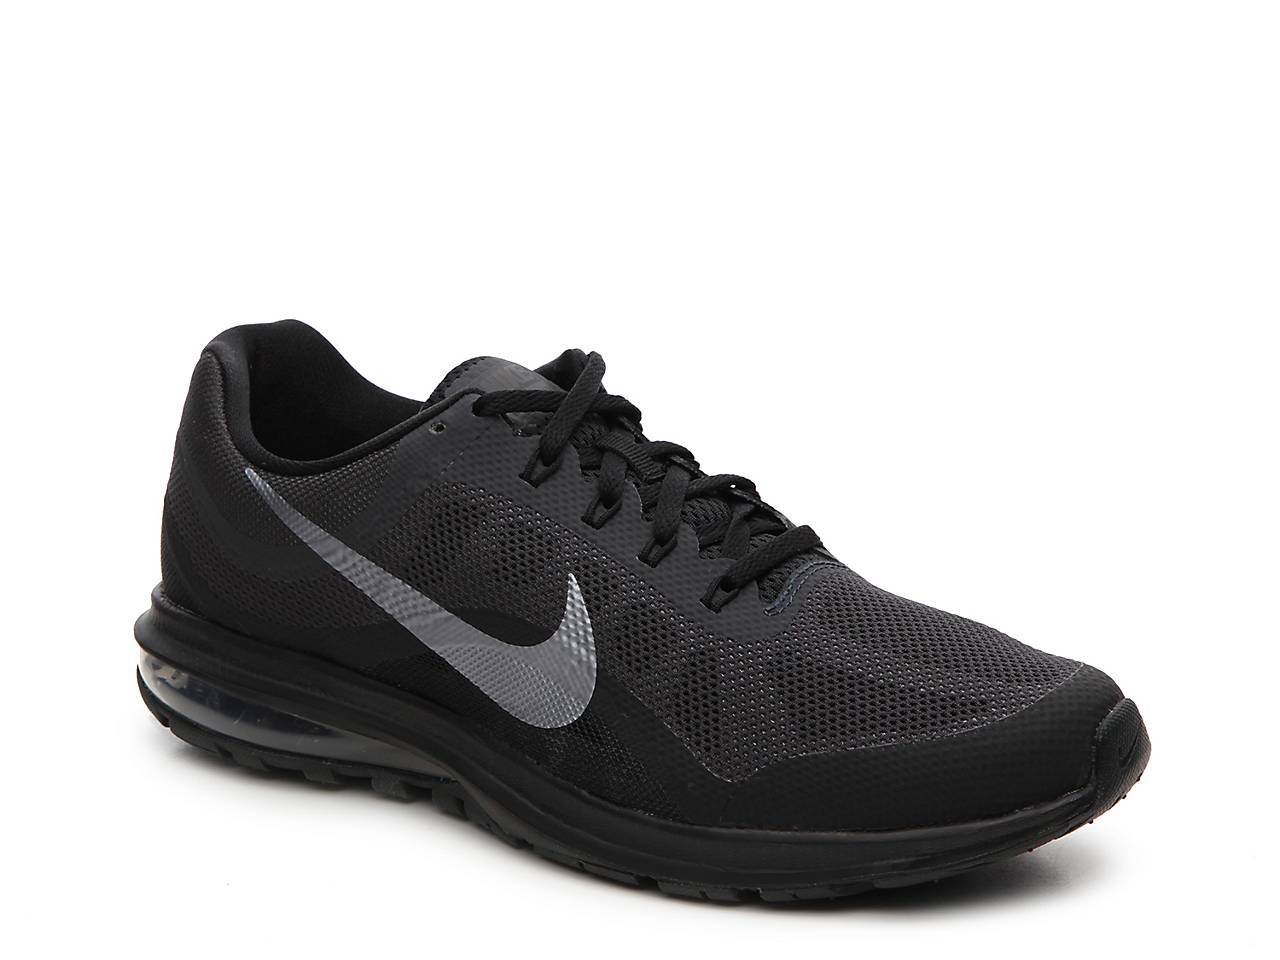 new arrival 48987 f2be1 Nike. Air Max Dynasty 2 Performance Running Shoe - Men s